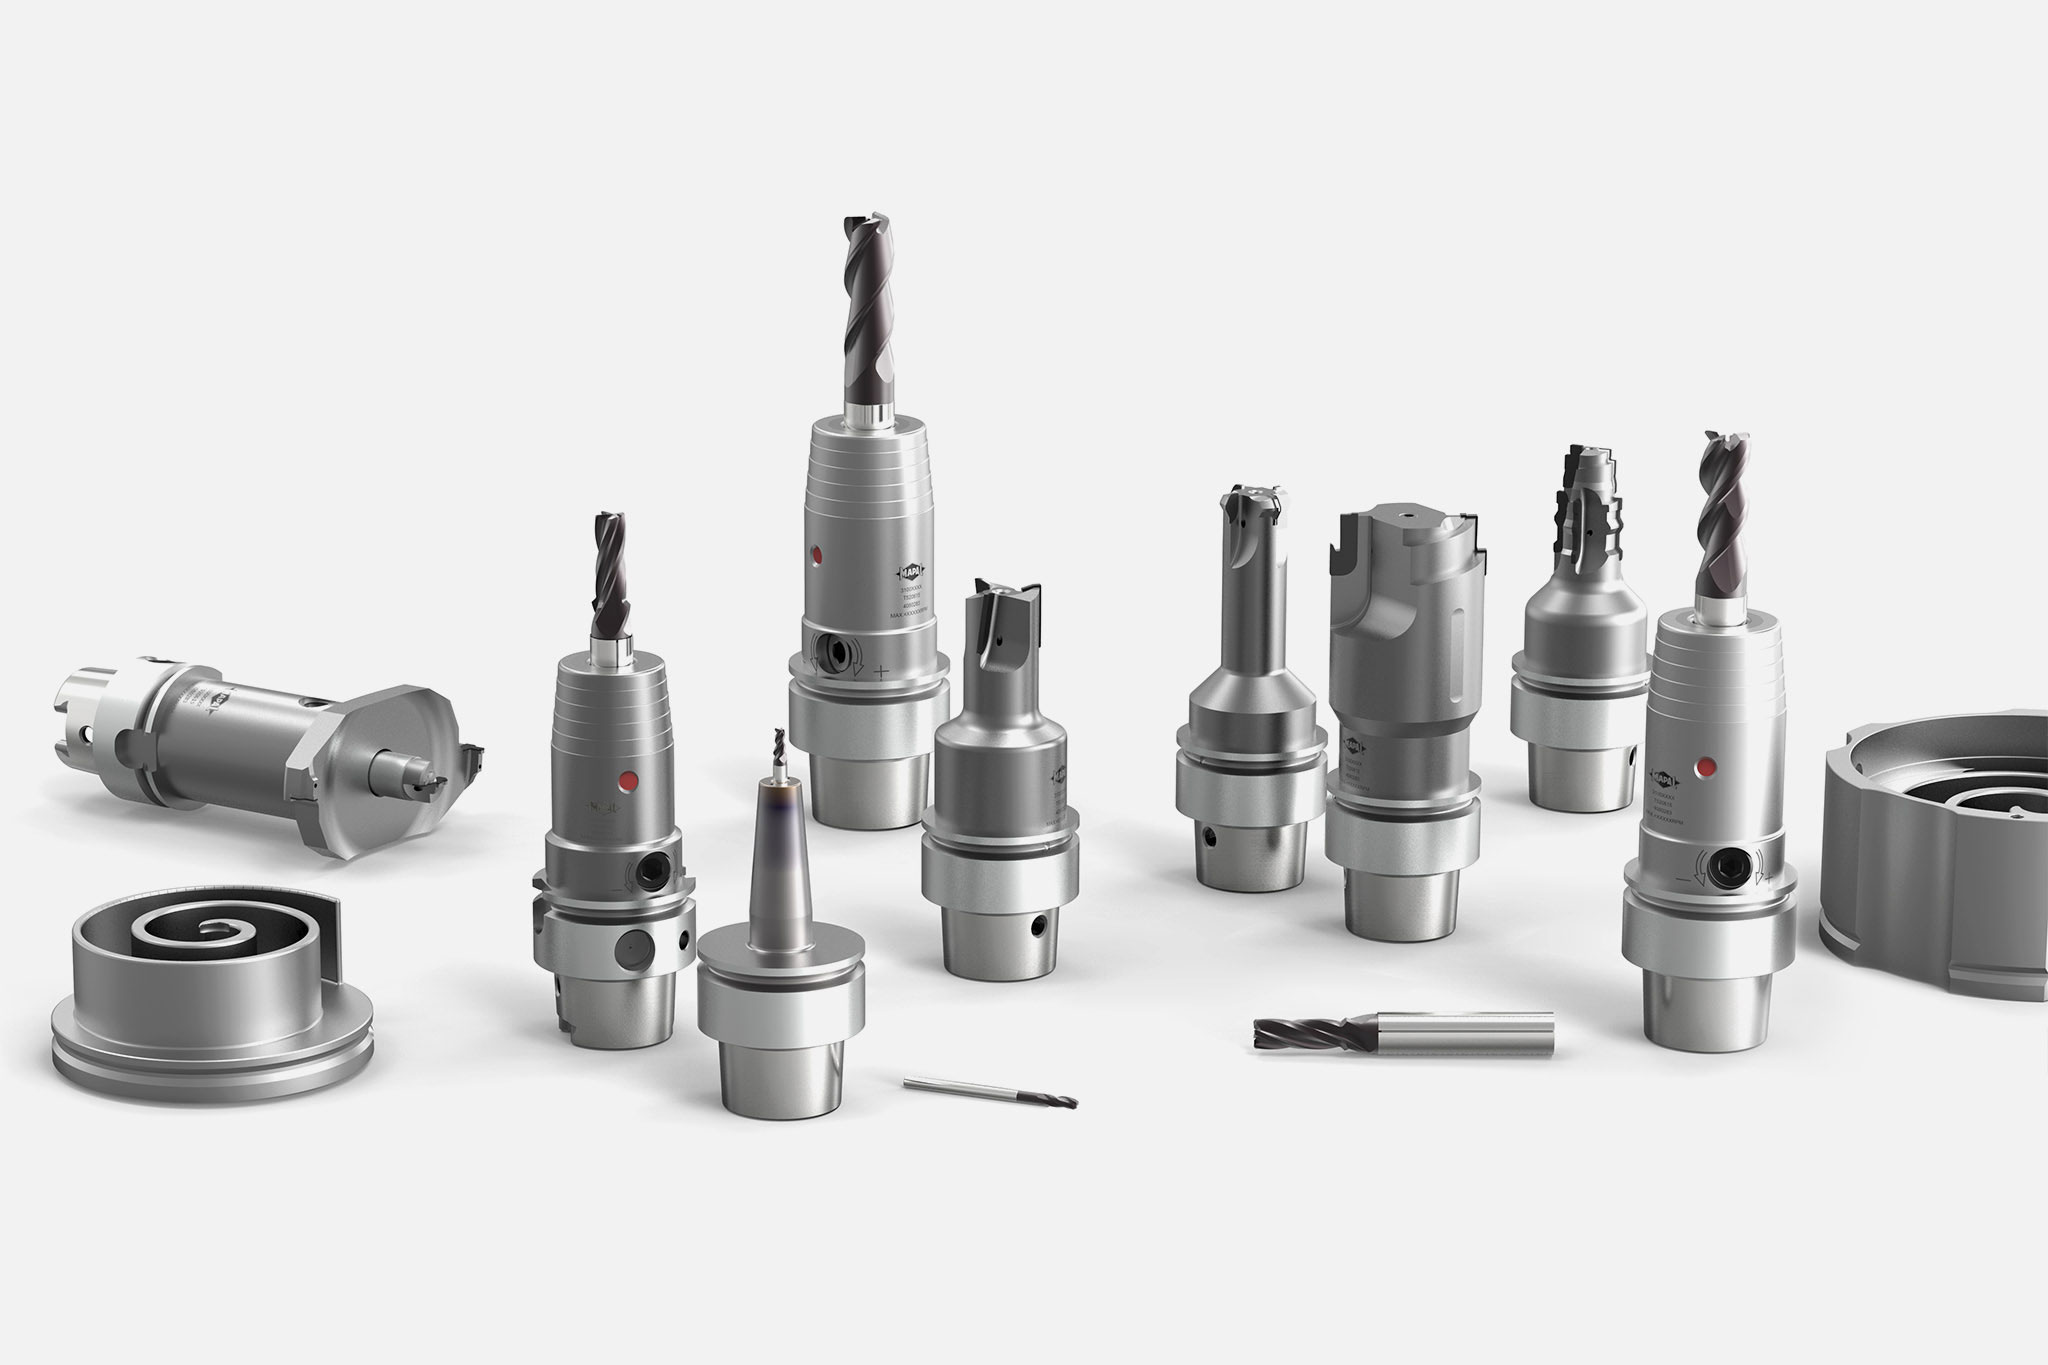 The complete range from MAPAL for machining scroll compressors.